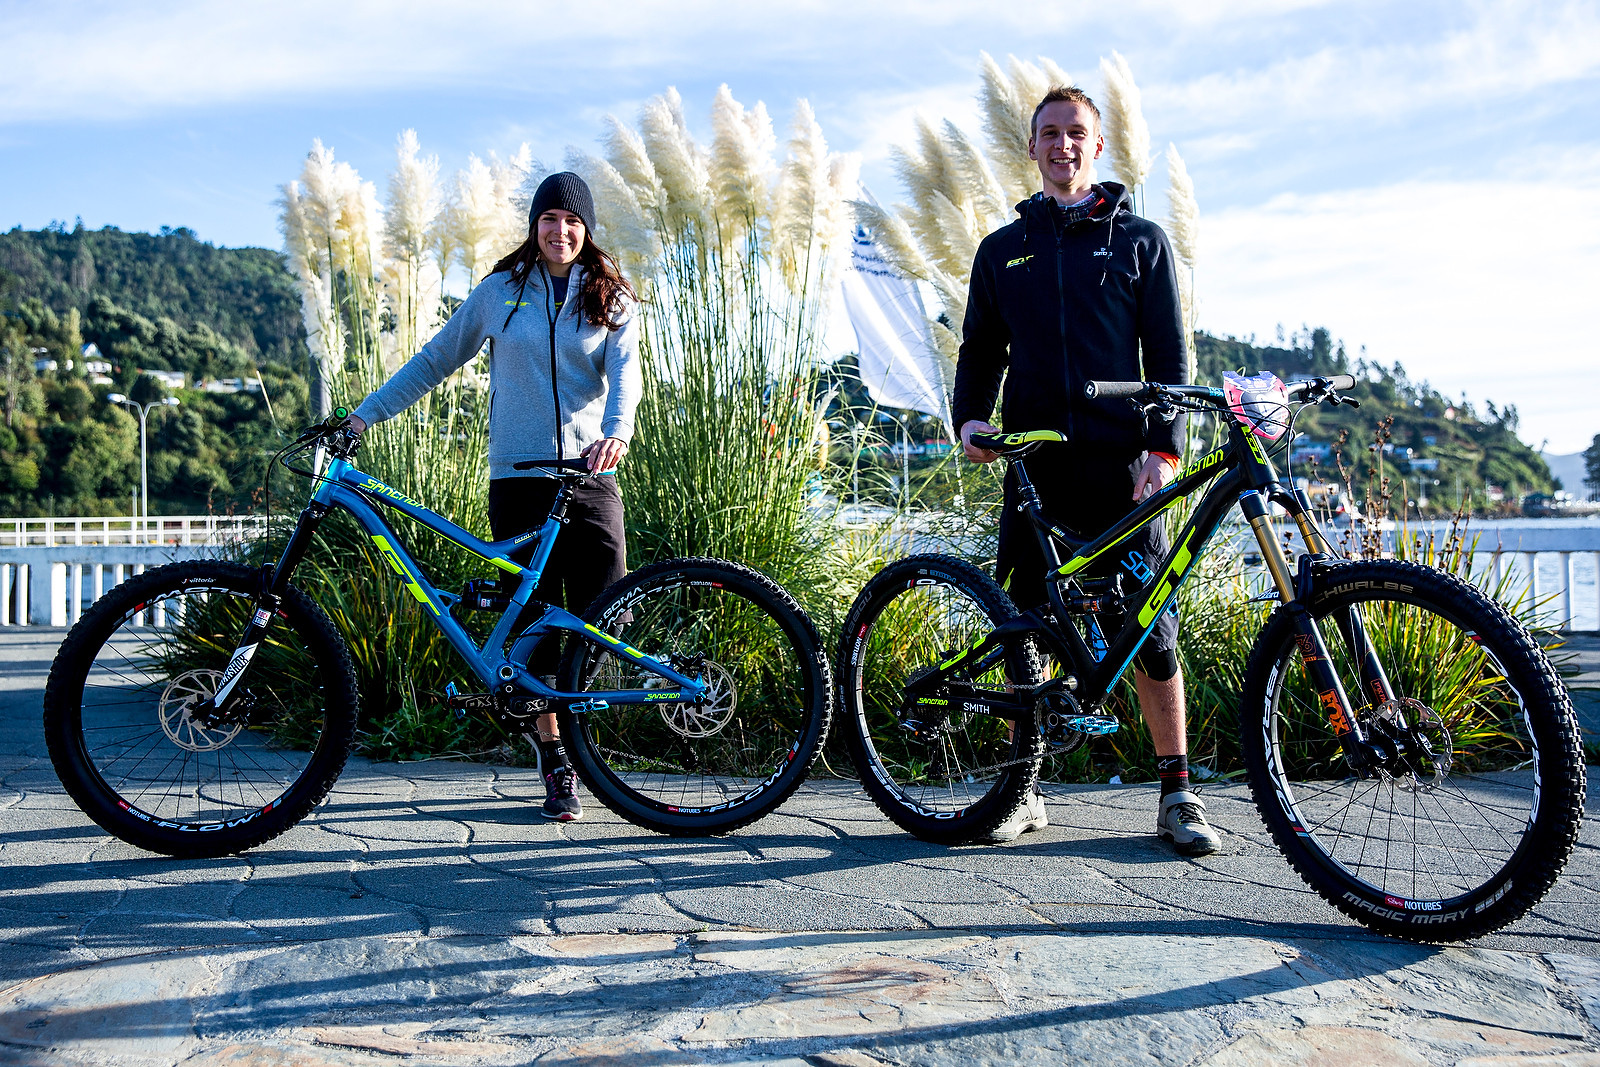 Anneke Beerten and Martin Maes - PIT BITS - Enduro World Series, Corral, Chile - Mountain Biking Pictures - Vital MTB